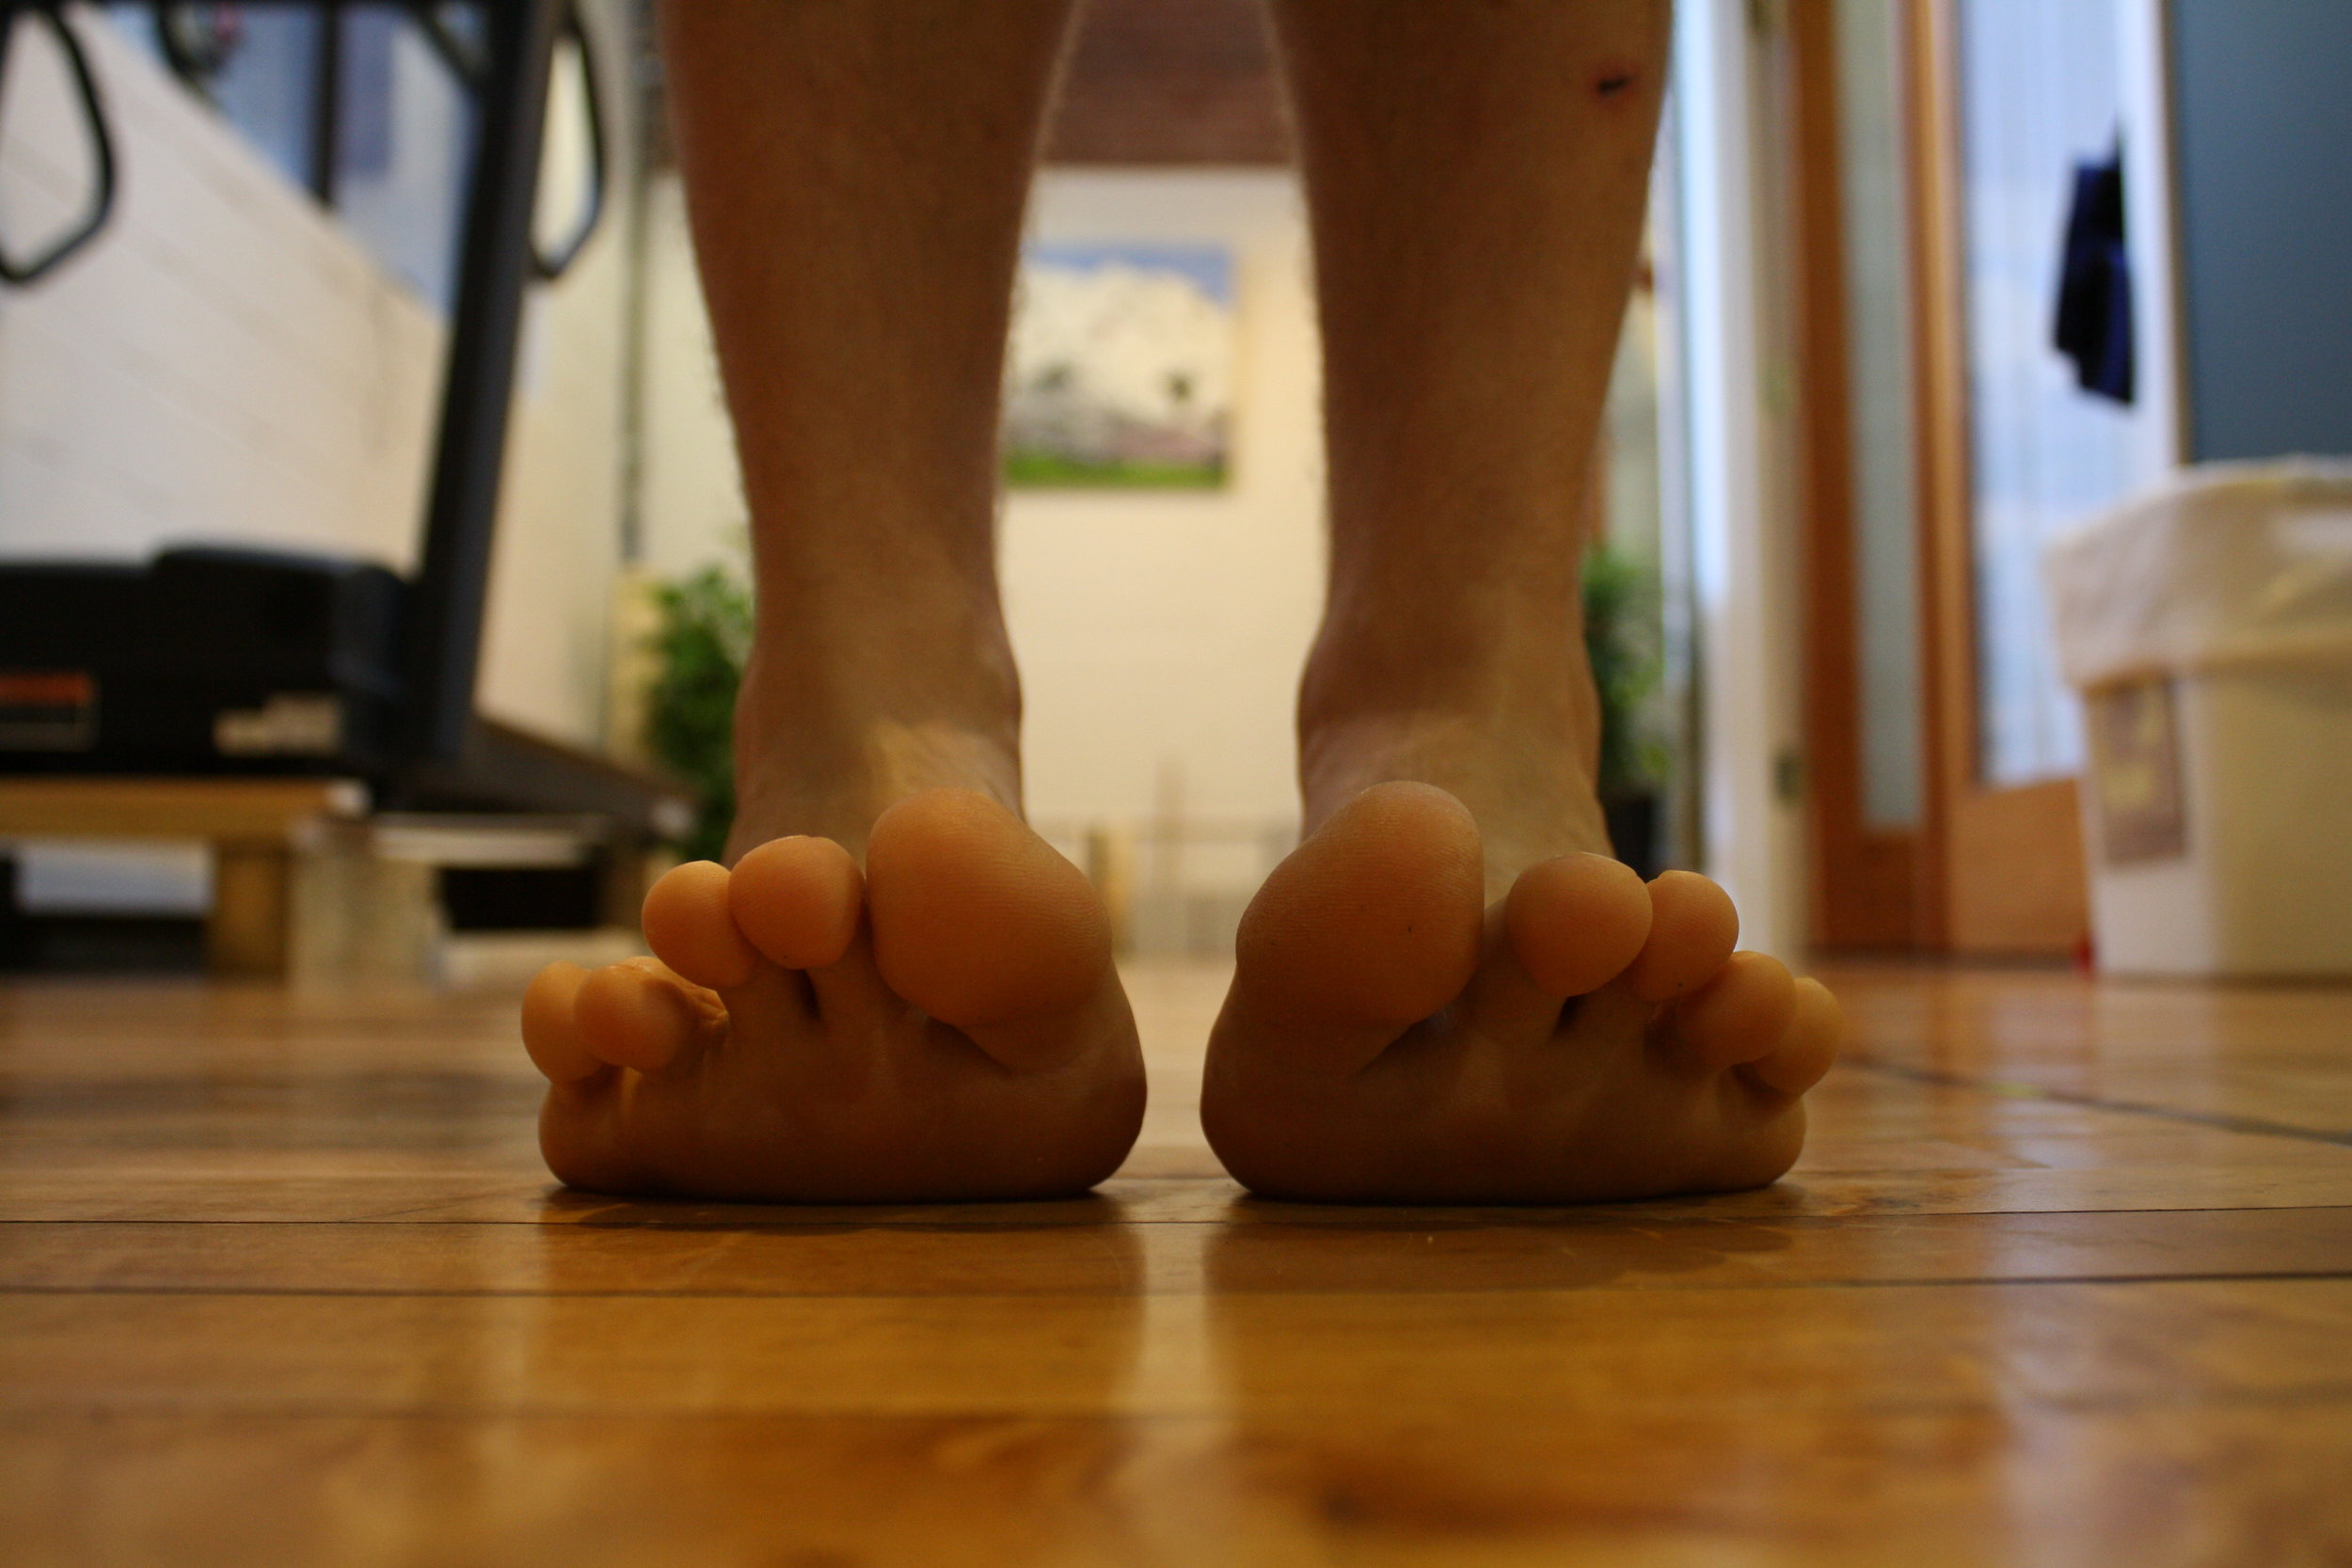 Toe mobility is a good indicator of total system mobility in the arches of the feet. Are you able to maintain this while going into a deep squat?